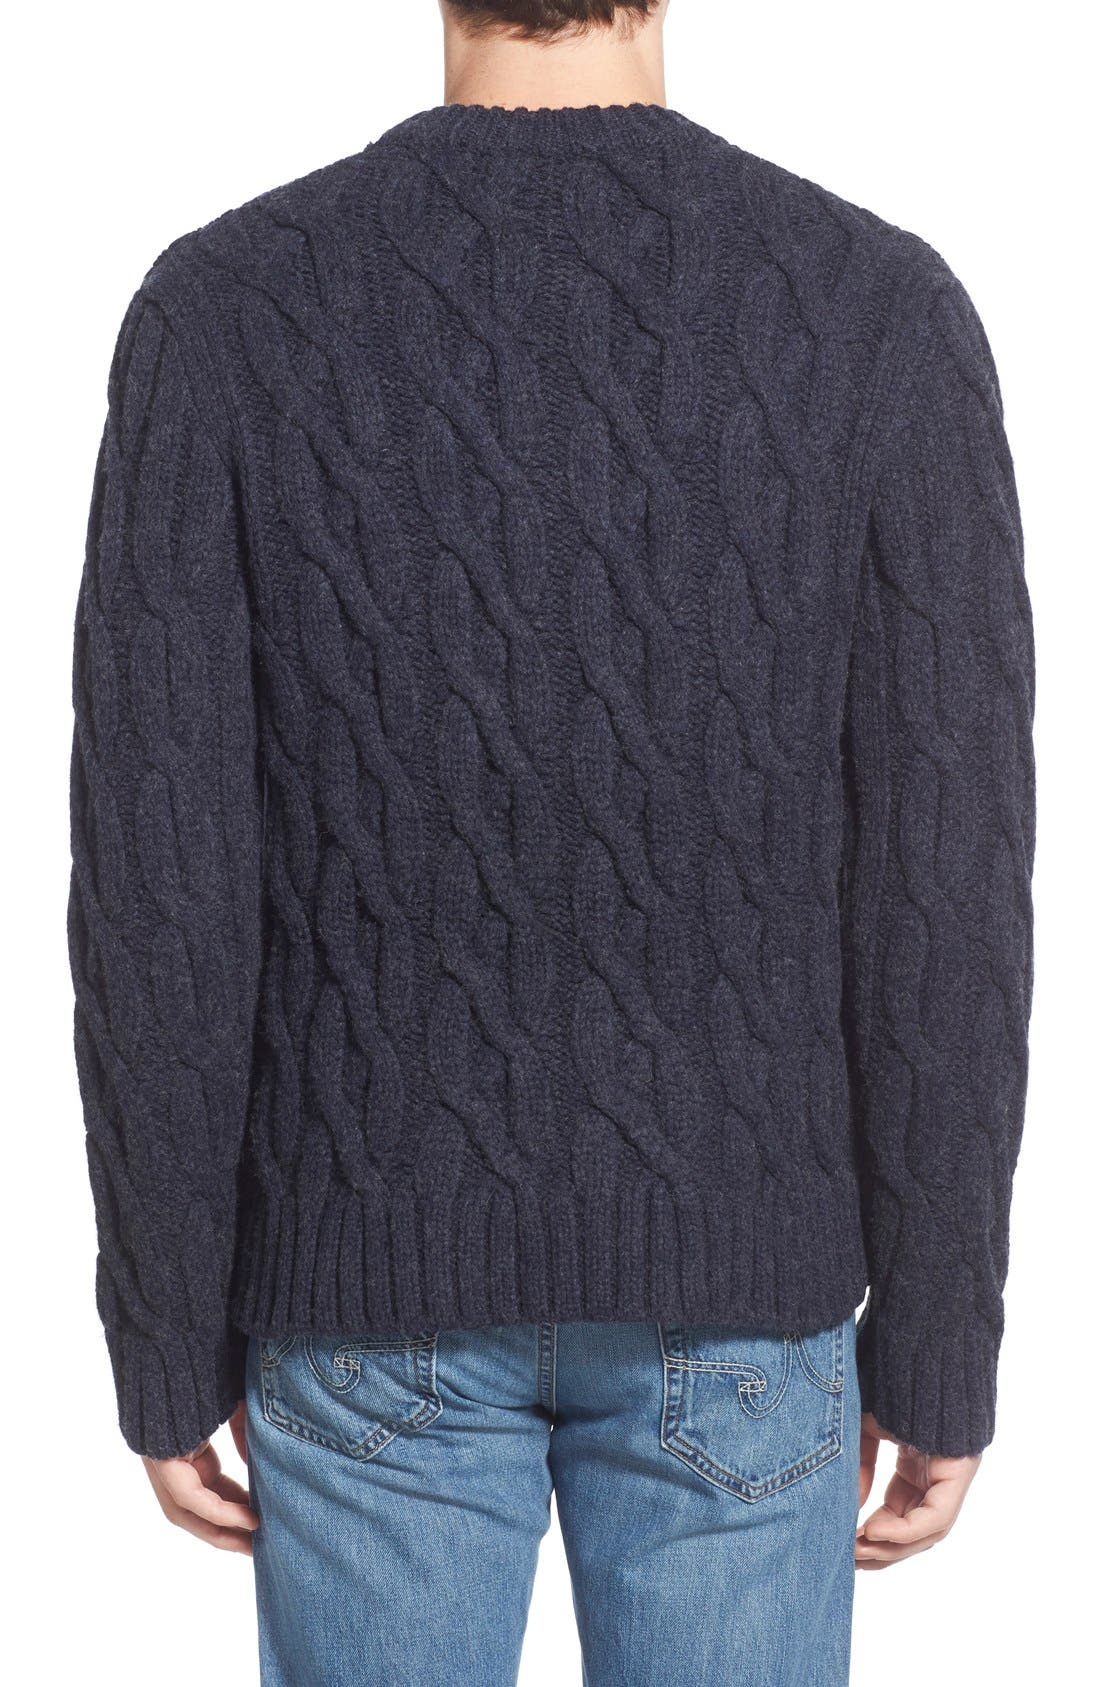 SCHOTT NYC,                             Regular Fit Cable Knit Crewneck Wool Blend Sweater,                             Alternate thumbnail 2, color,                             410